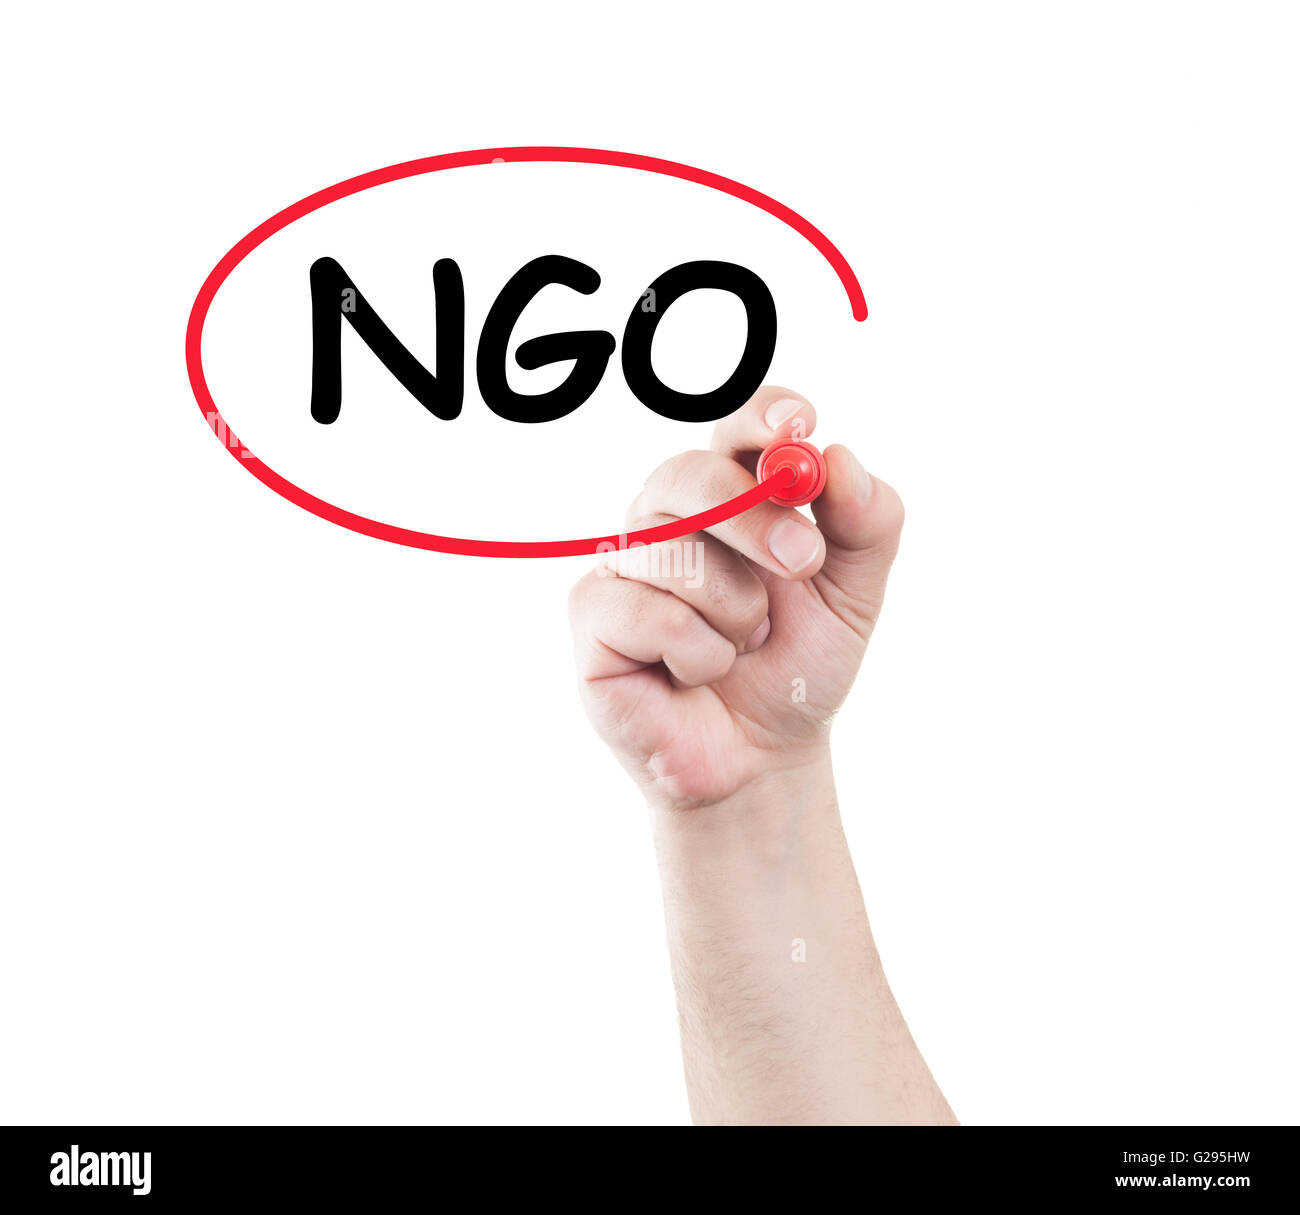 Hand circle ngo text on transparent wipe board with white background and copy space. Non governmental organization - Stock Image